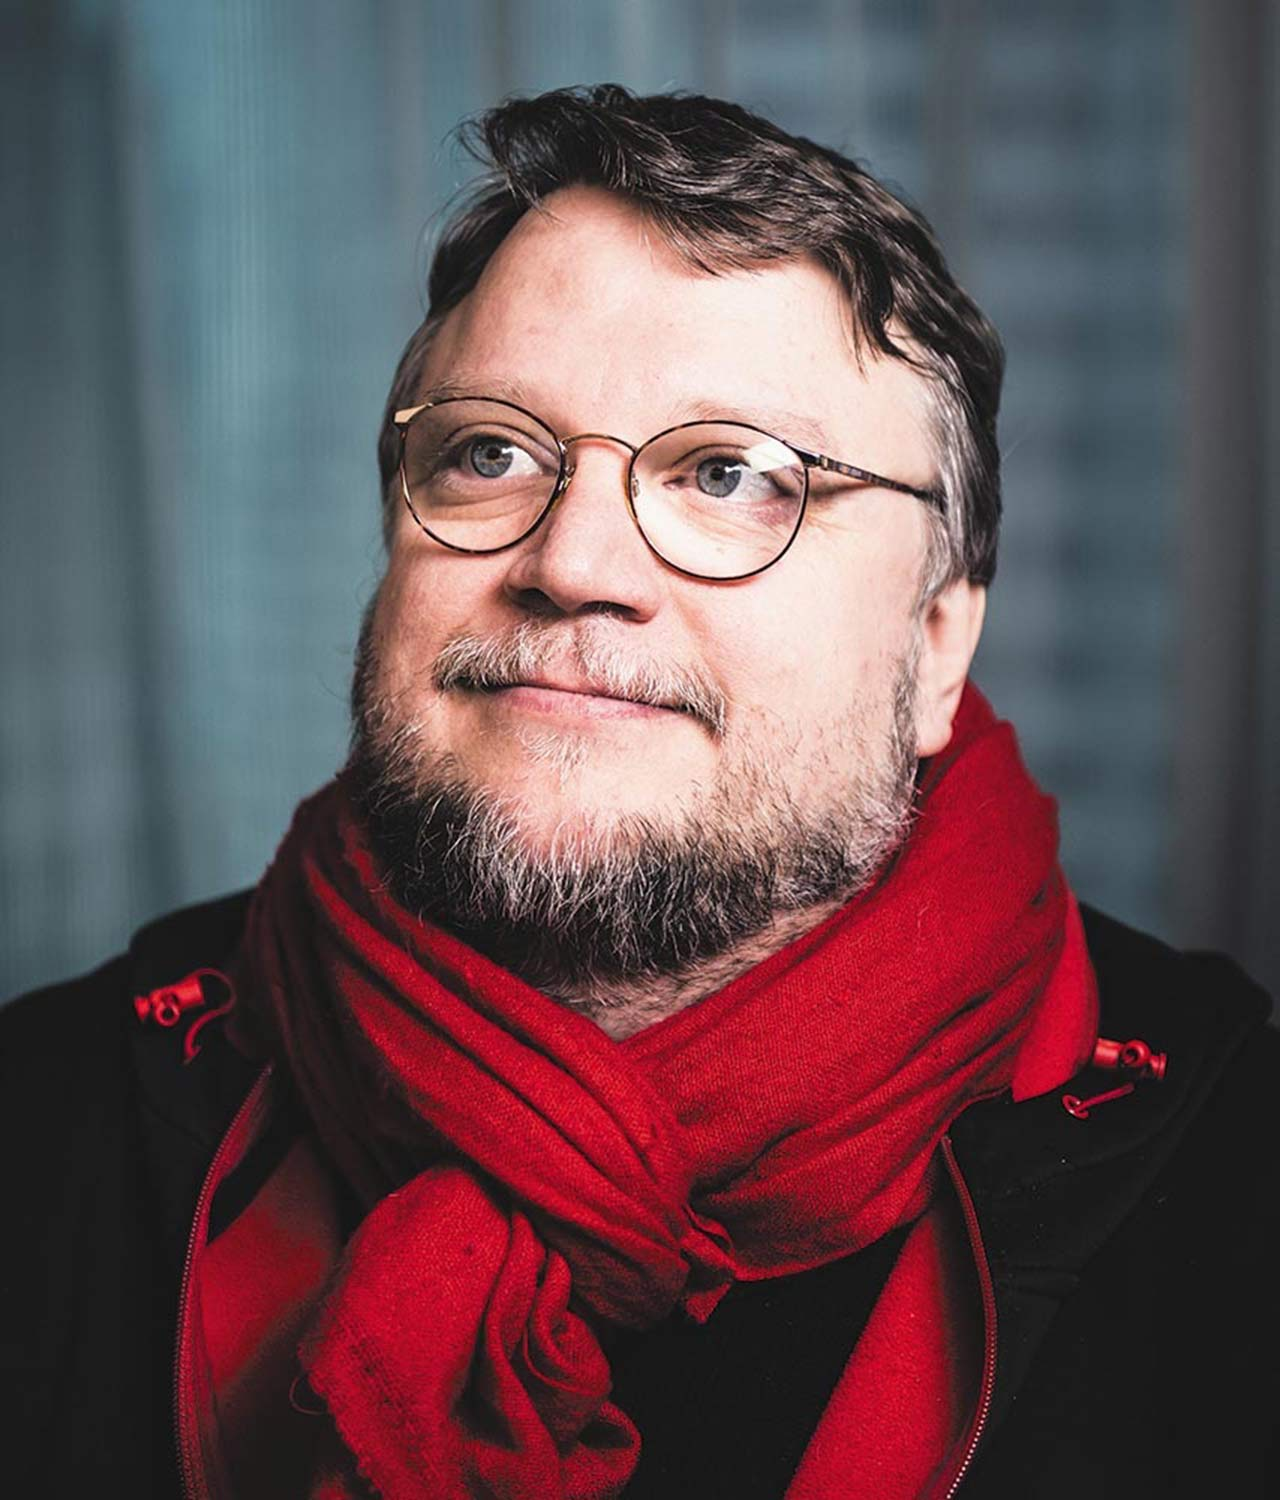 jason_gordon_guillermo_del_toro_buena